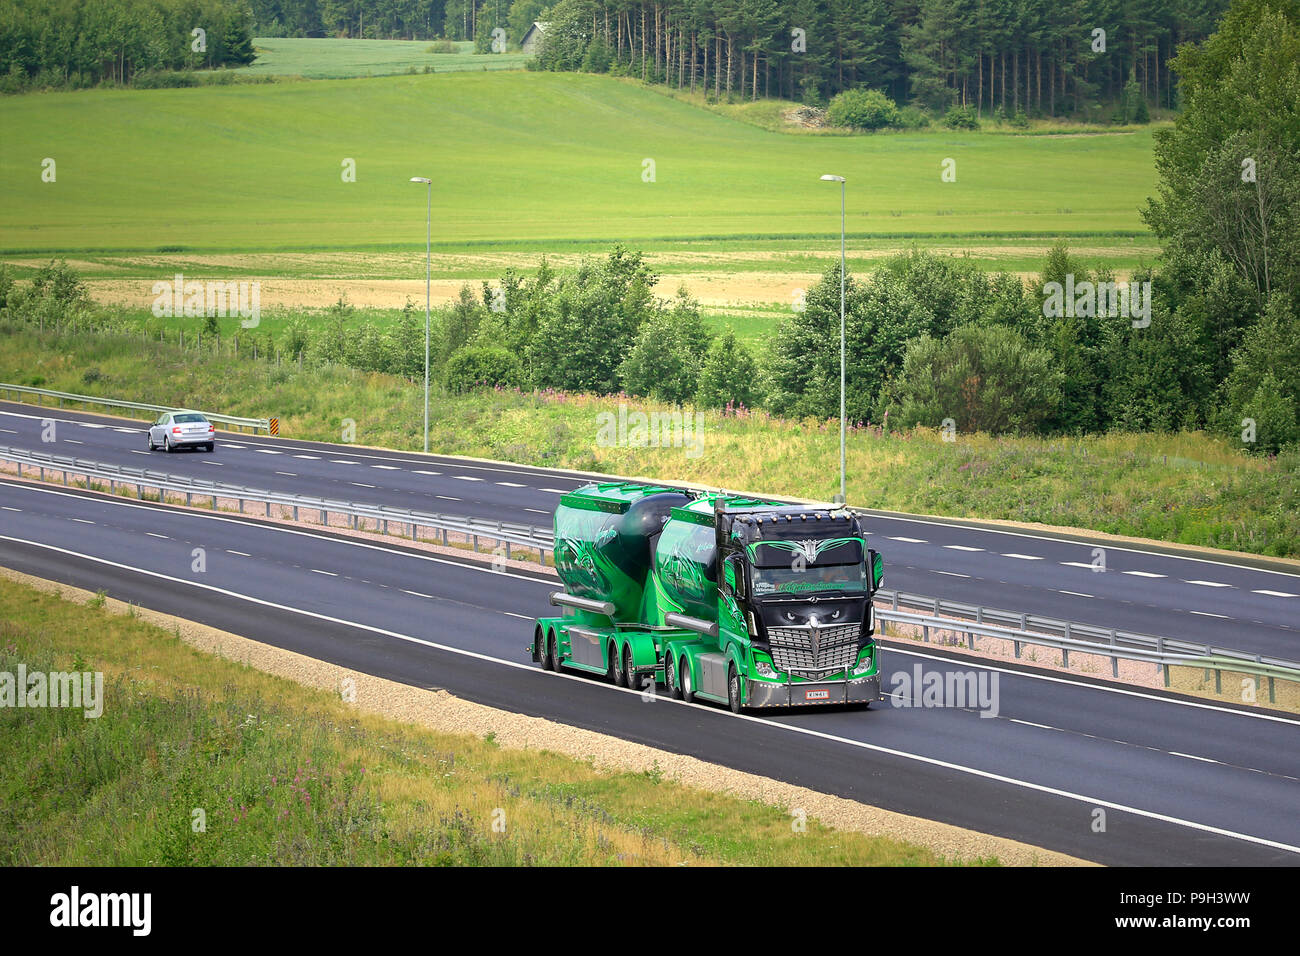 Mercedes-Benz Actros 2551 Highway Hero show truck and bulk transporter of Kuljetus Auvinen Oy on the road in summer. Salo, Finland - July 13, 2018. - Stock Image